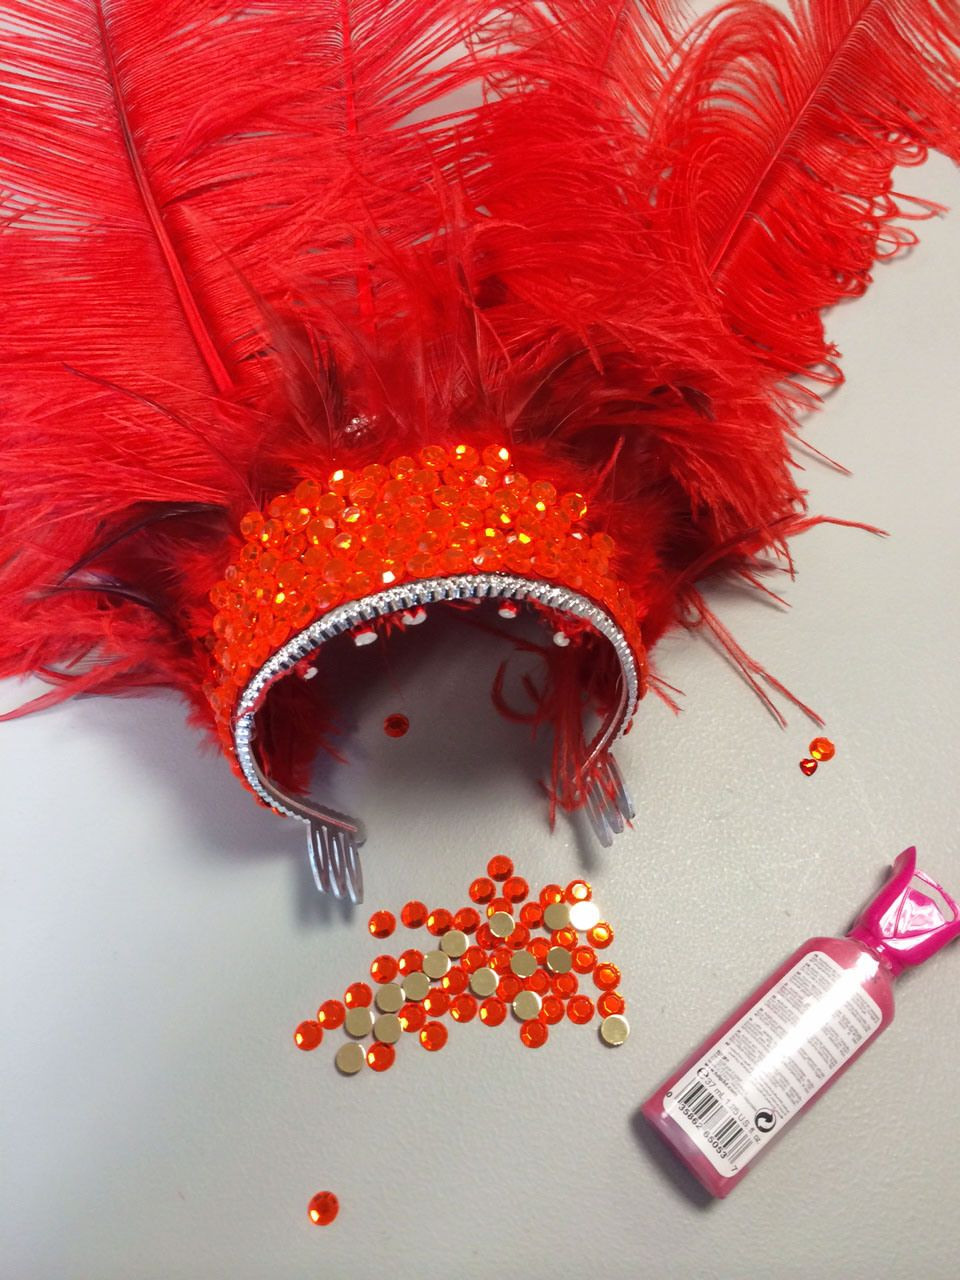 Best ideas about DIY Carnival Costume . Save or Pin Jessica's DIY Feather Headdress Carnival Now.